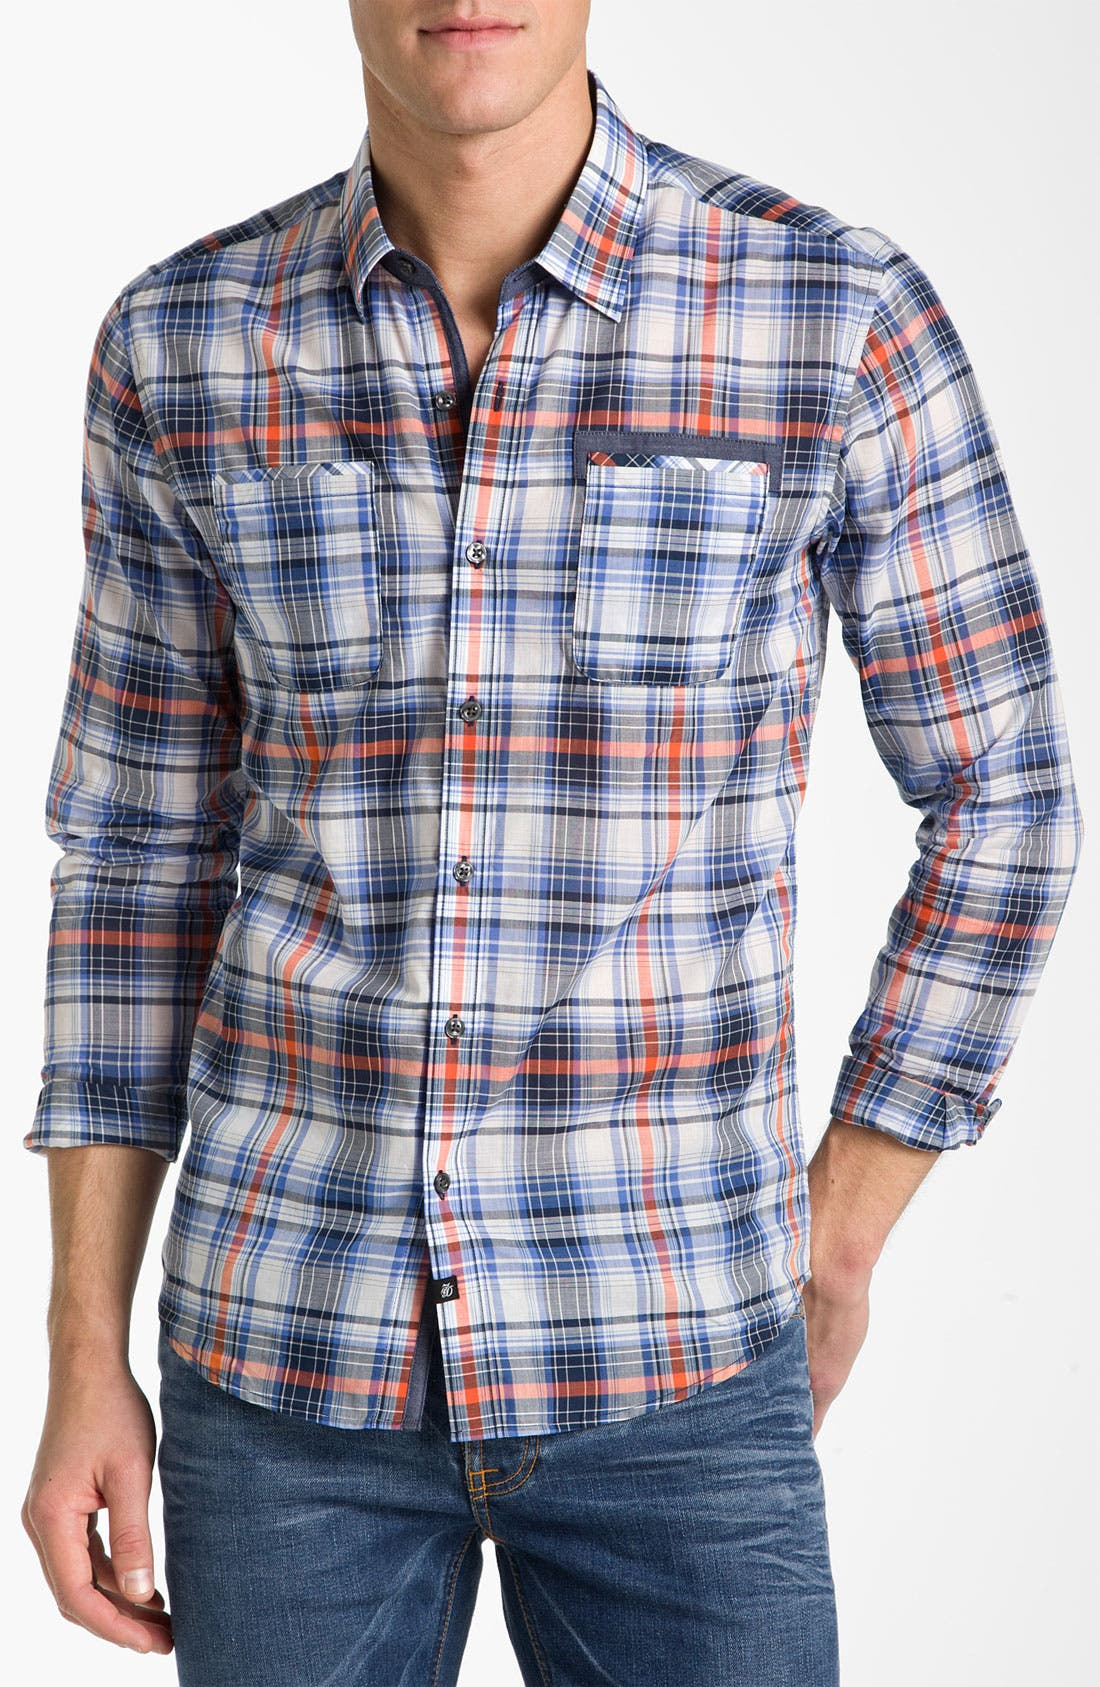 Alternate Image 1 Selected - 7 Diamonds 'In The Mood' Plaid Woven Shirt